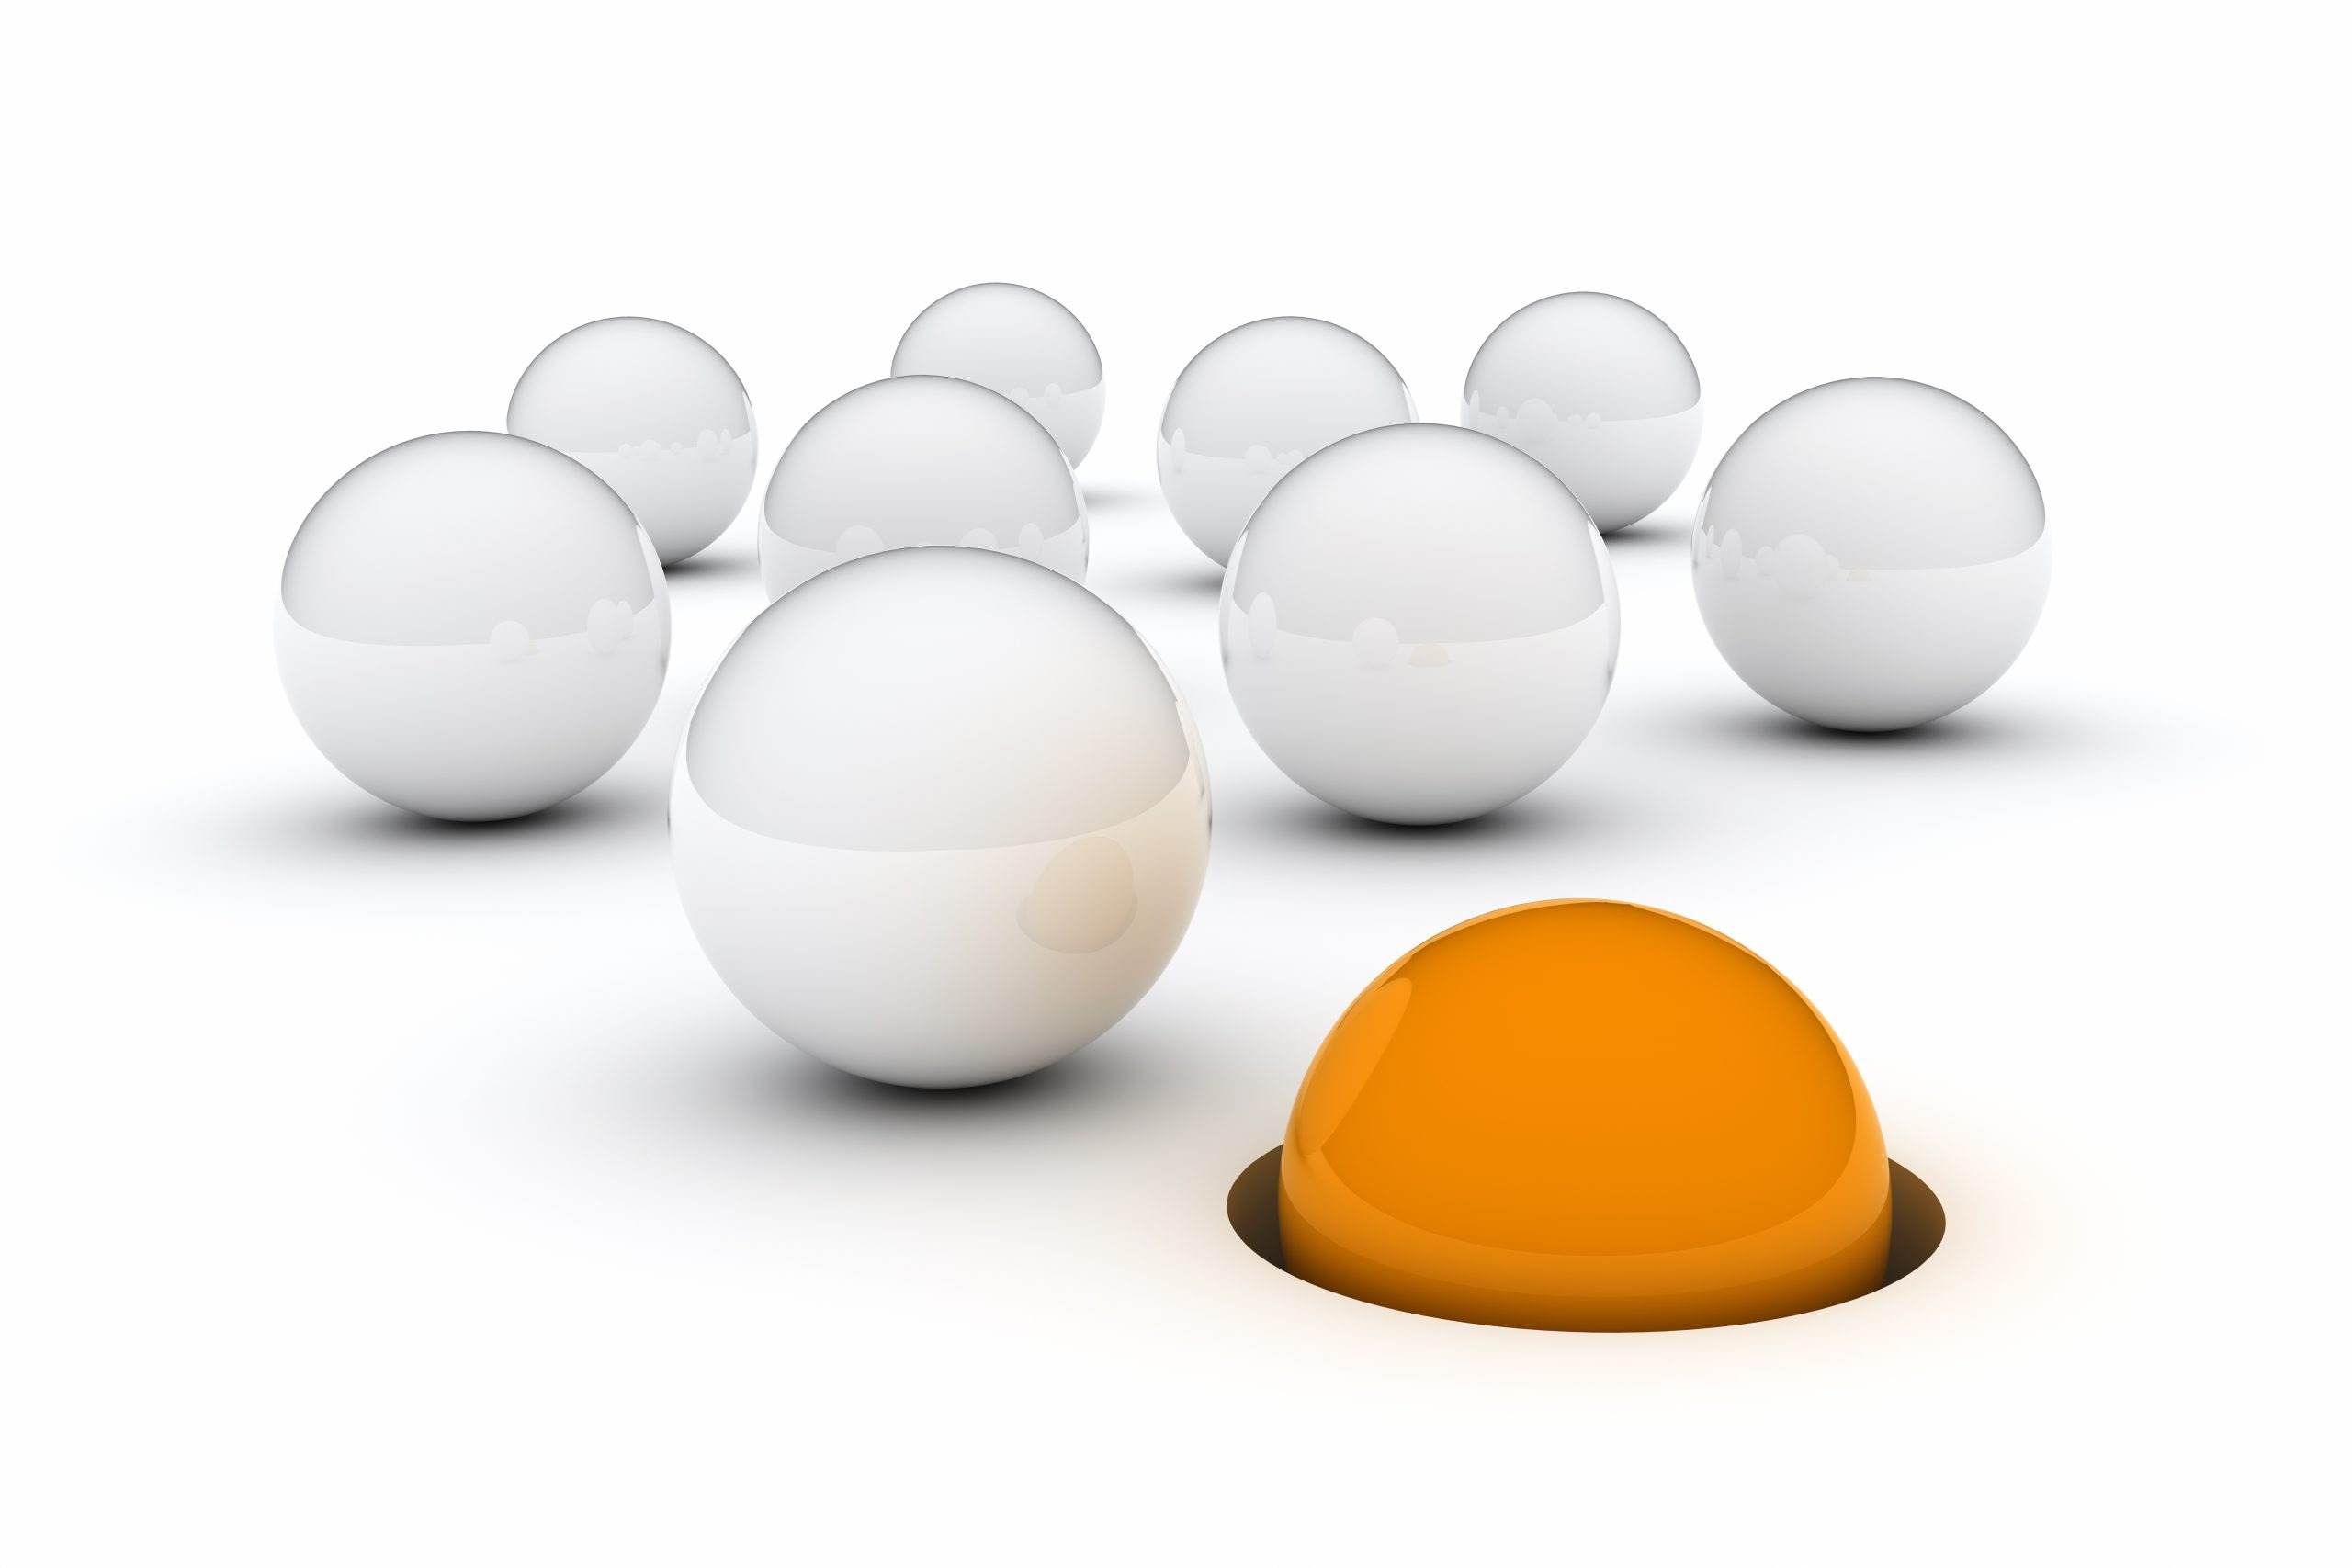 Group of white marbles following an orange marble in a hole in the ground.